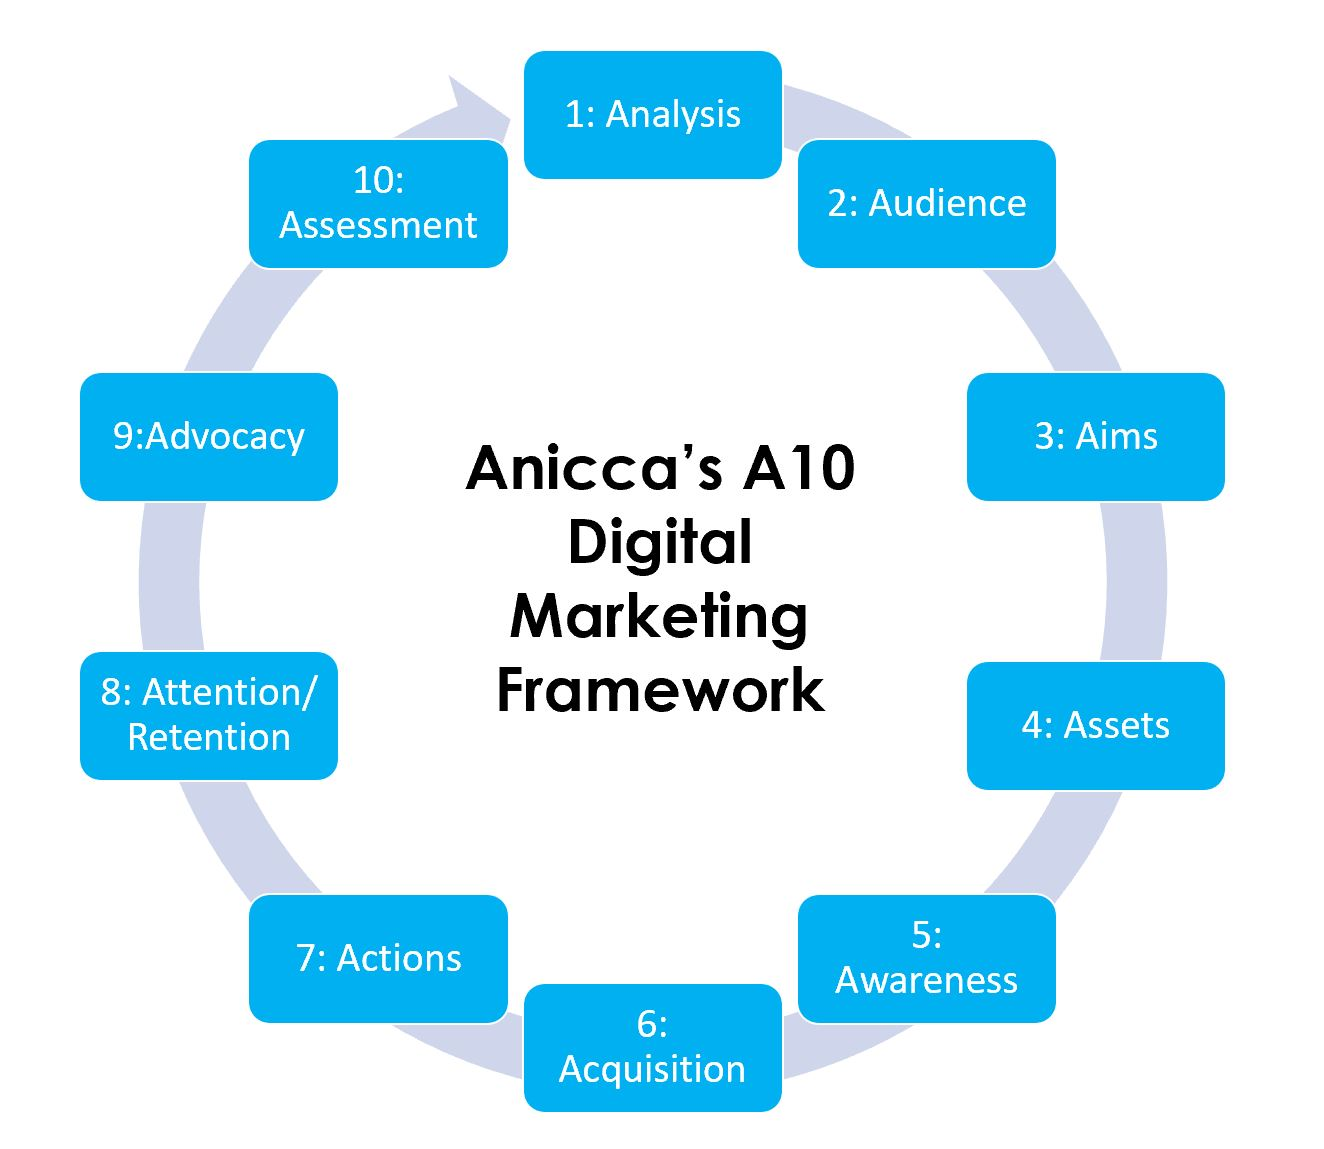 Introducing Anicca's A10 Digital Marketing Framework to develop your Digital Marketing Strategy